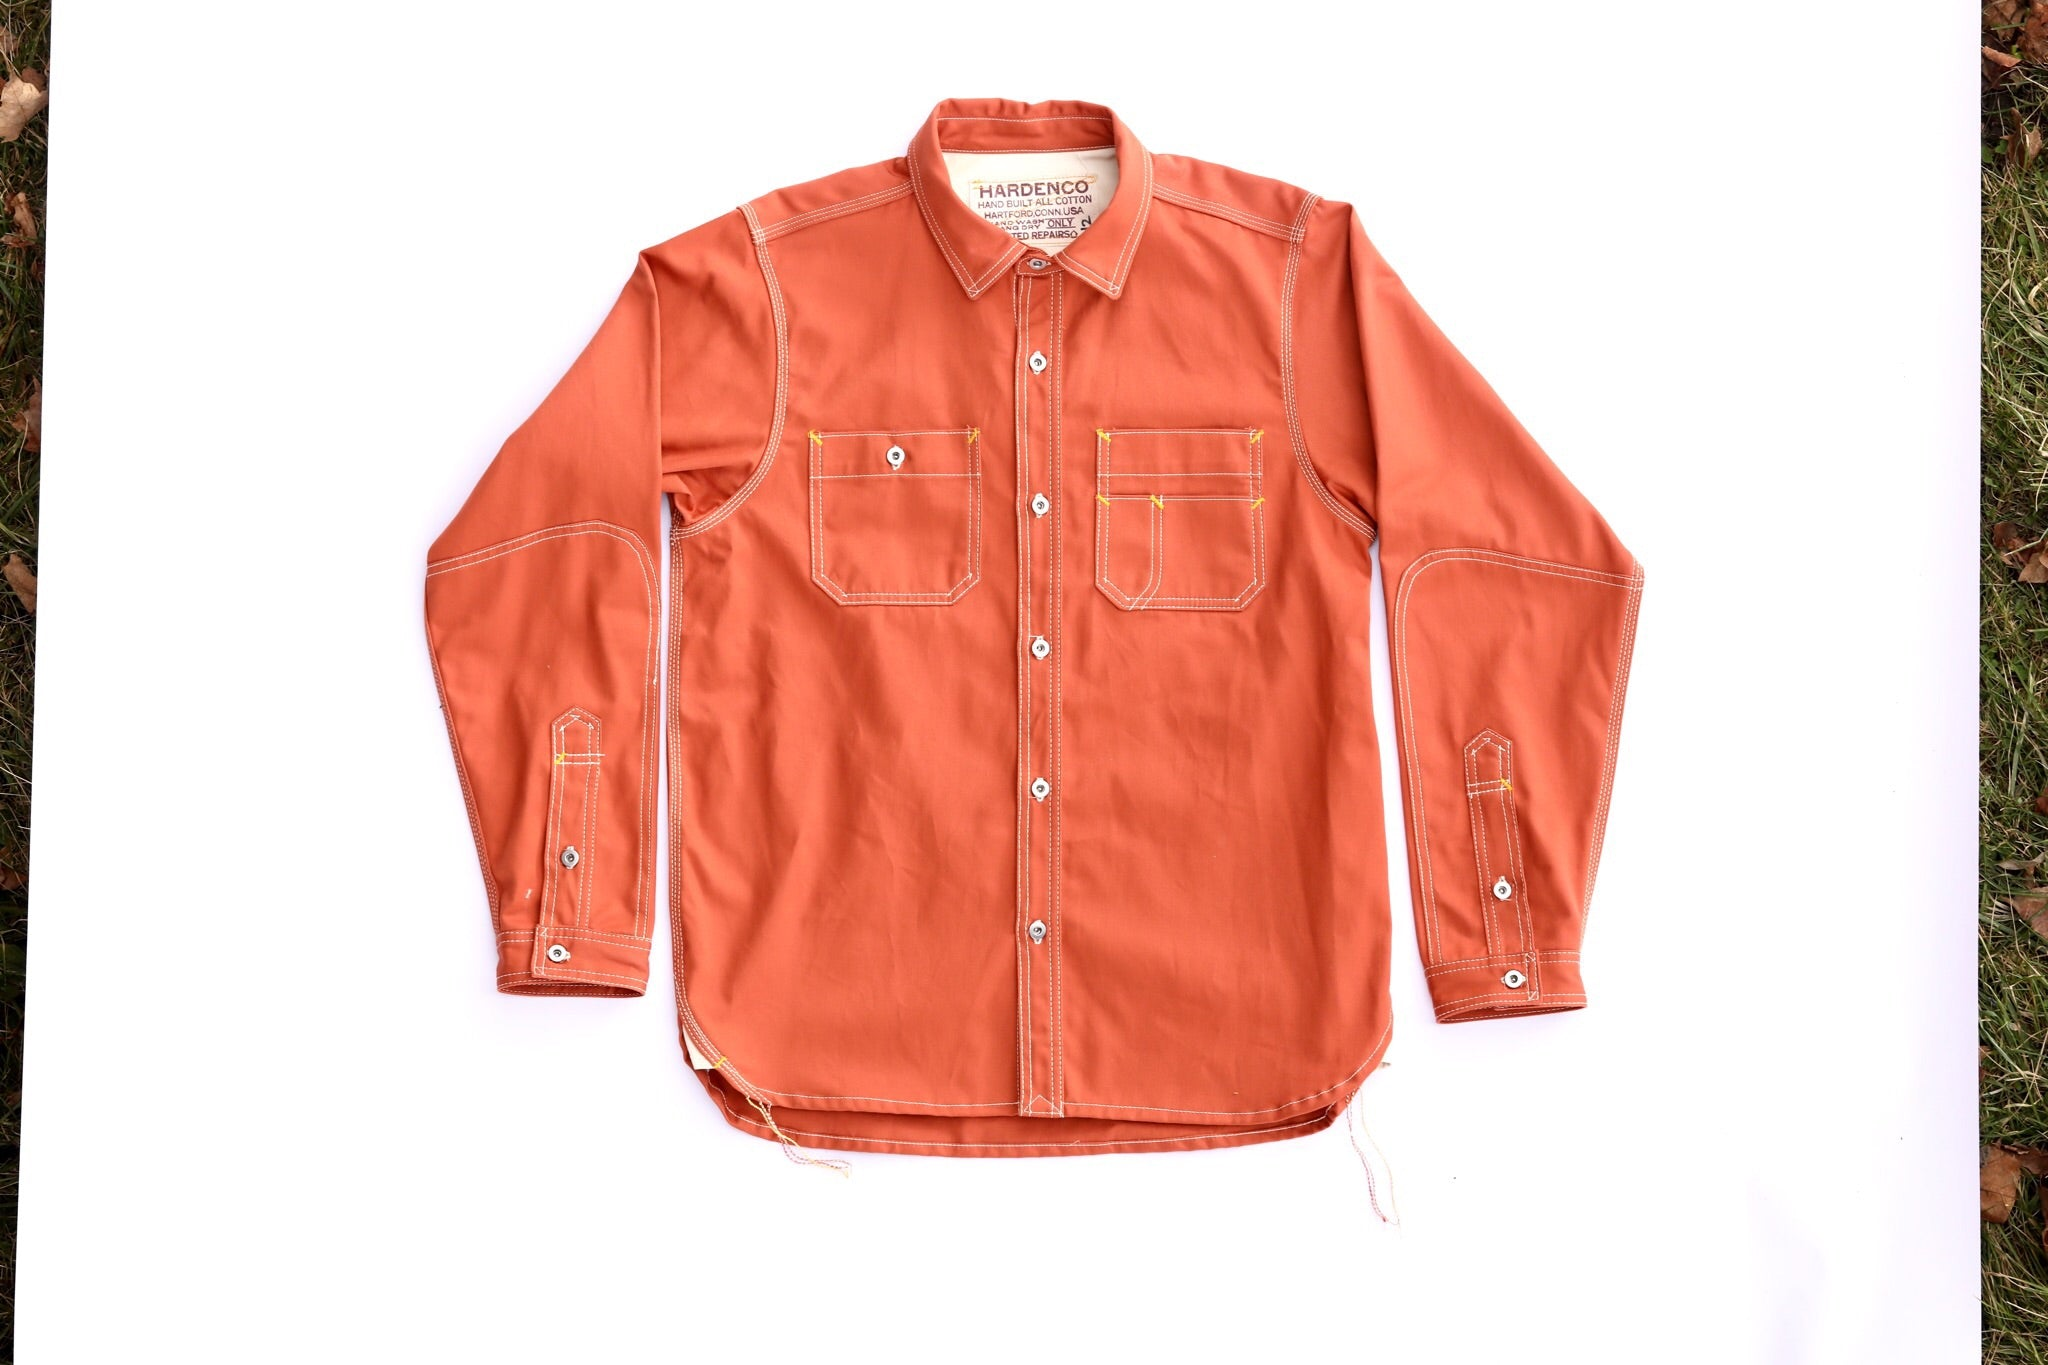 Orange workshirt